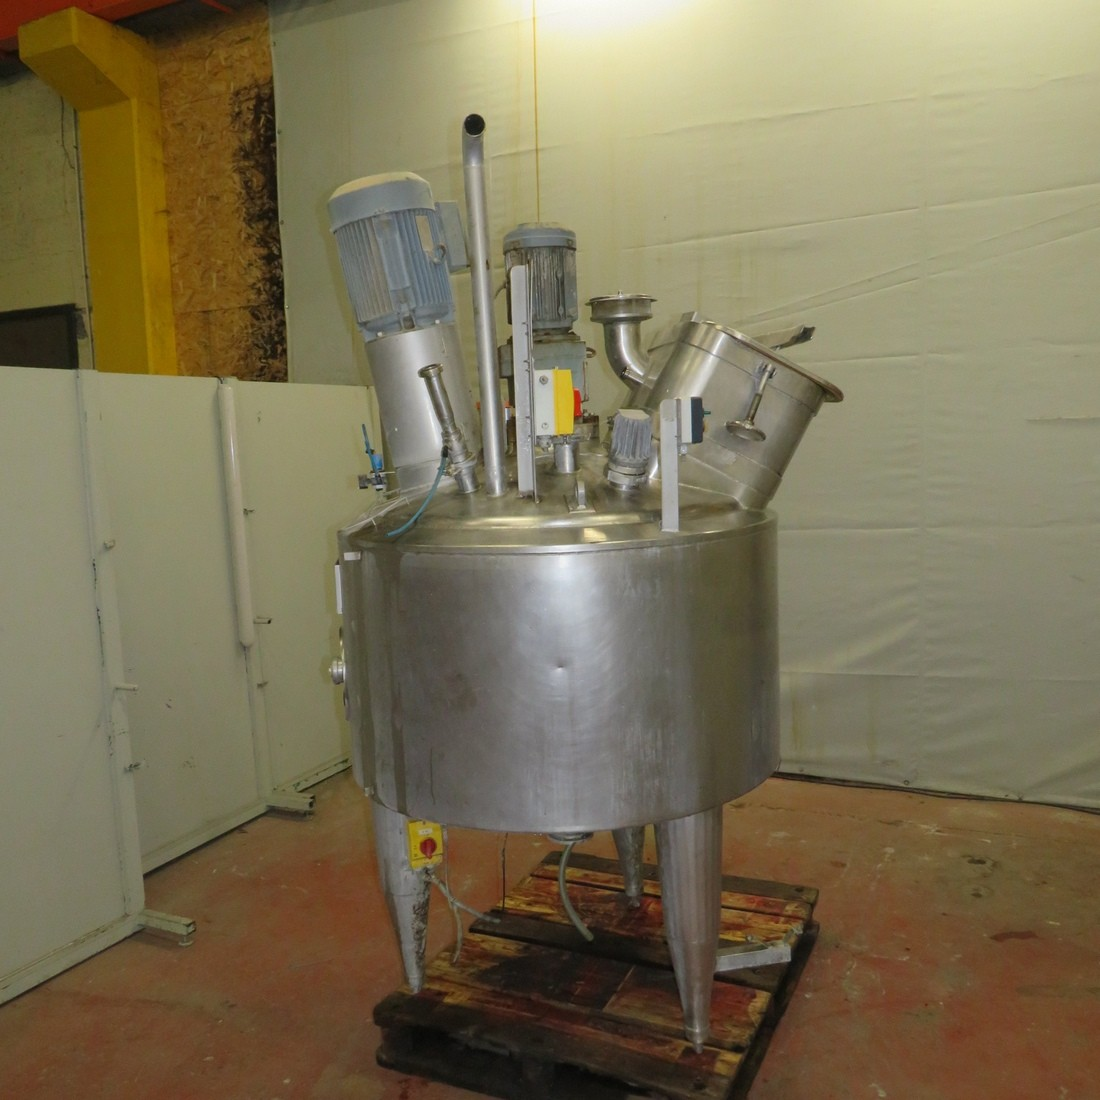 R6MA6132  Stainless steel GOAVEC mixing tank 450 litres double jacket